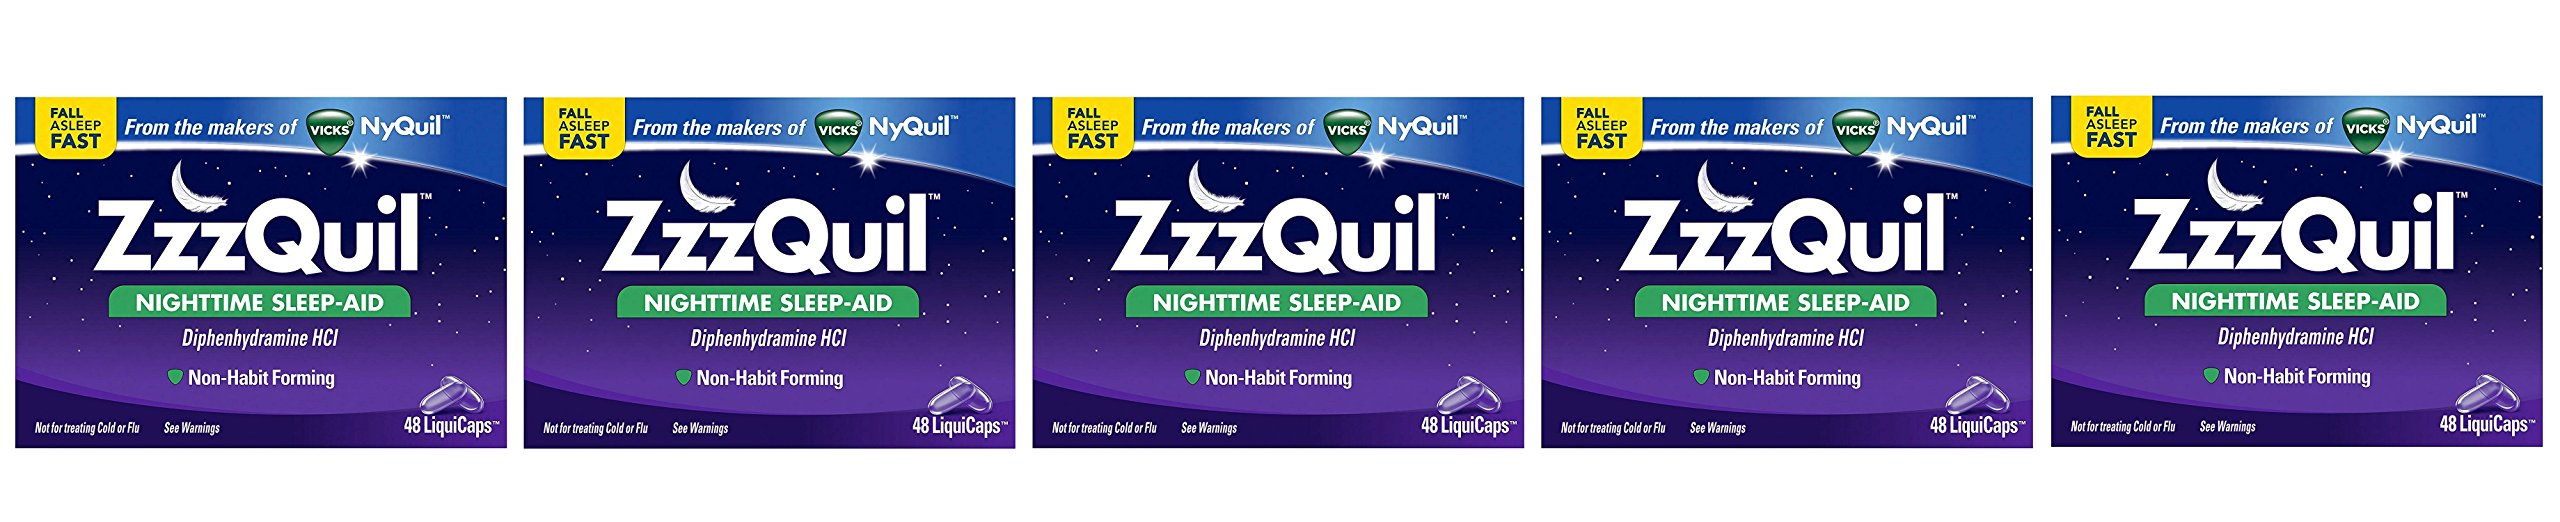 ZzzQuil Nighttime CPpYat Sleep Aid, 48 LiquiCaps (Pack of 5)